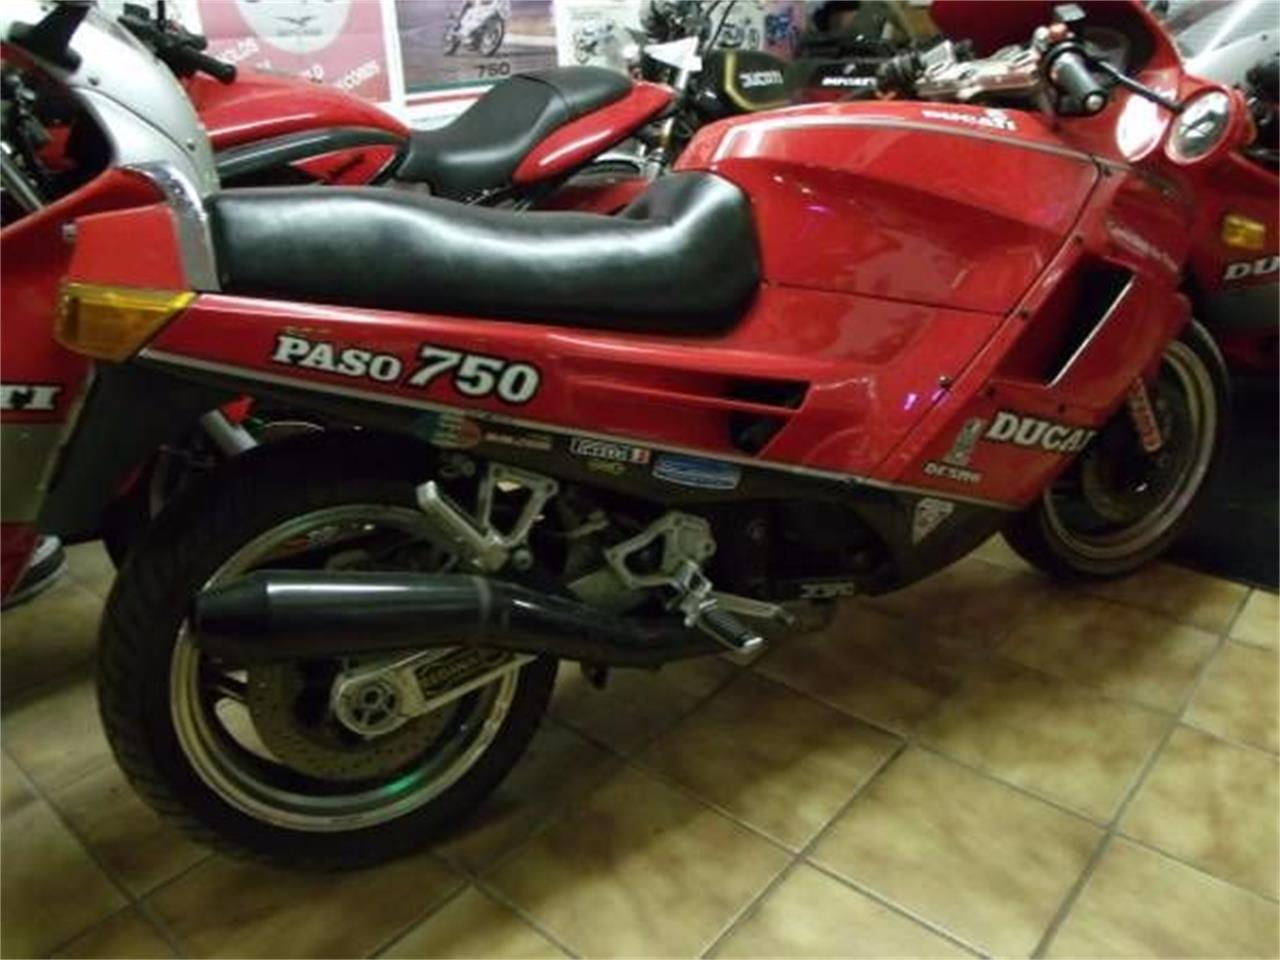 Large Picture of '87 Ducati Motorcycle - $5,995.00 Offered by Classic Car Deals - O85S